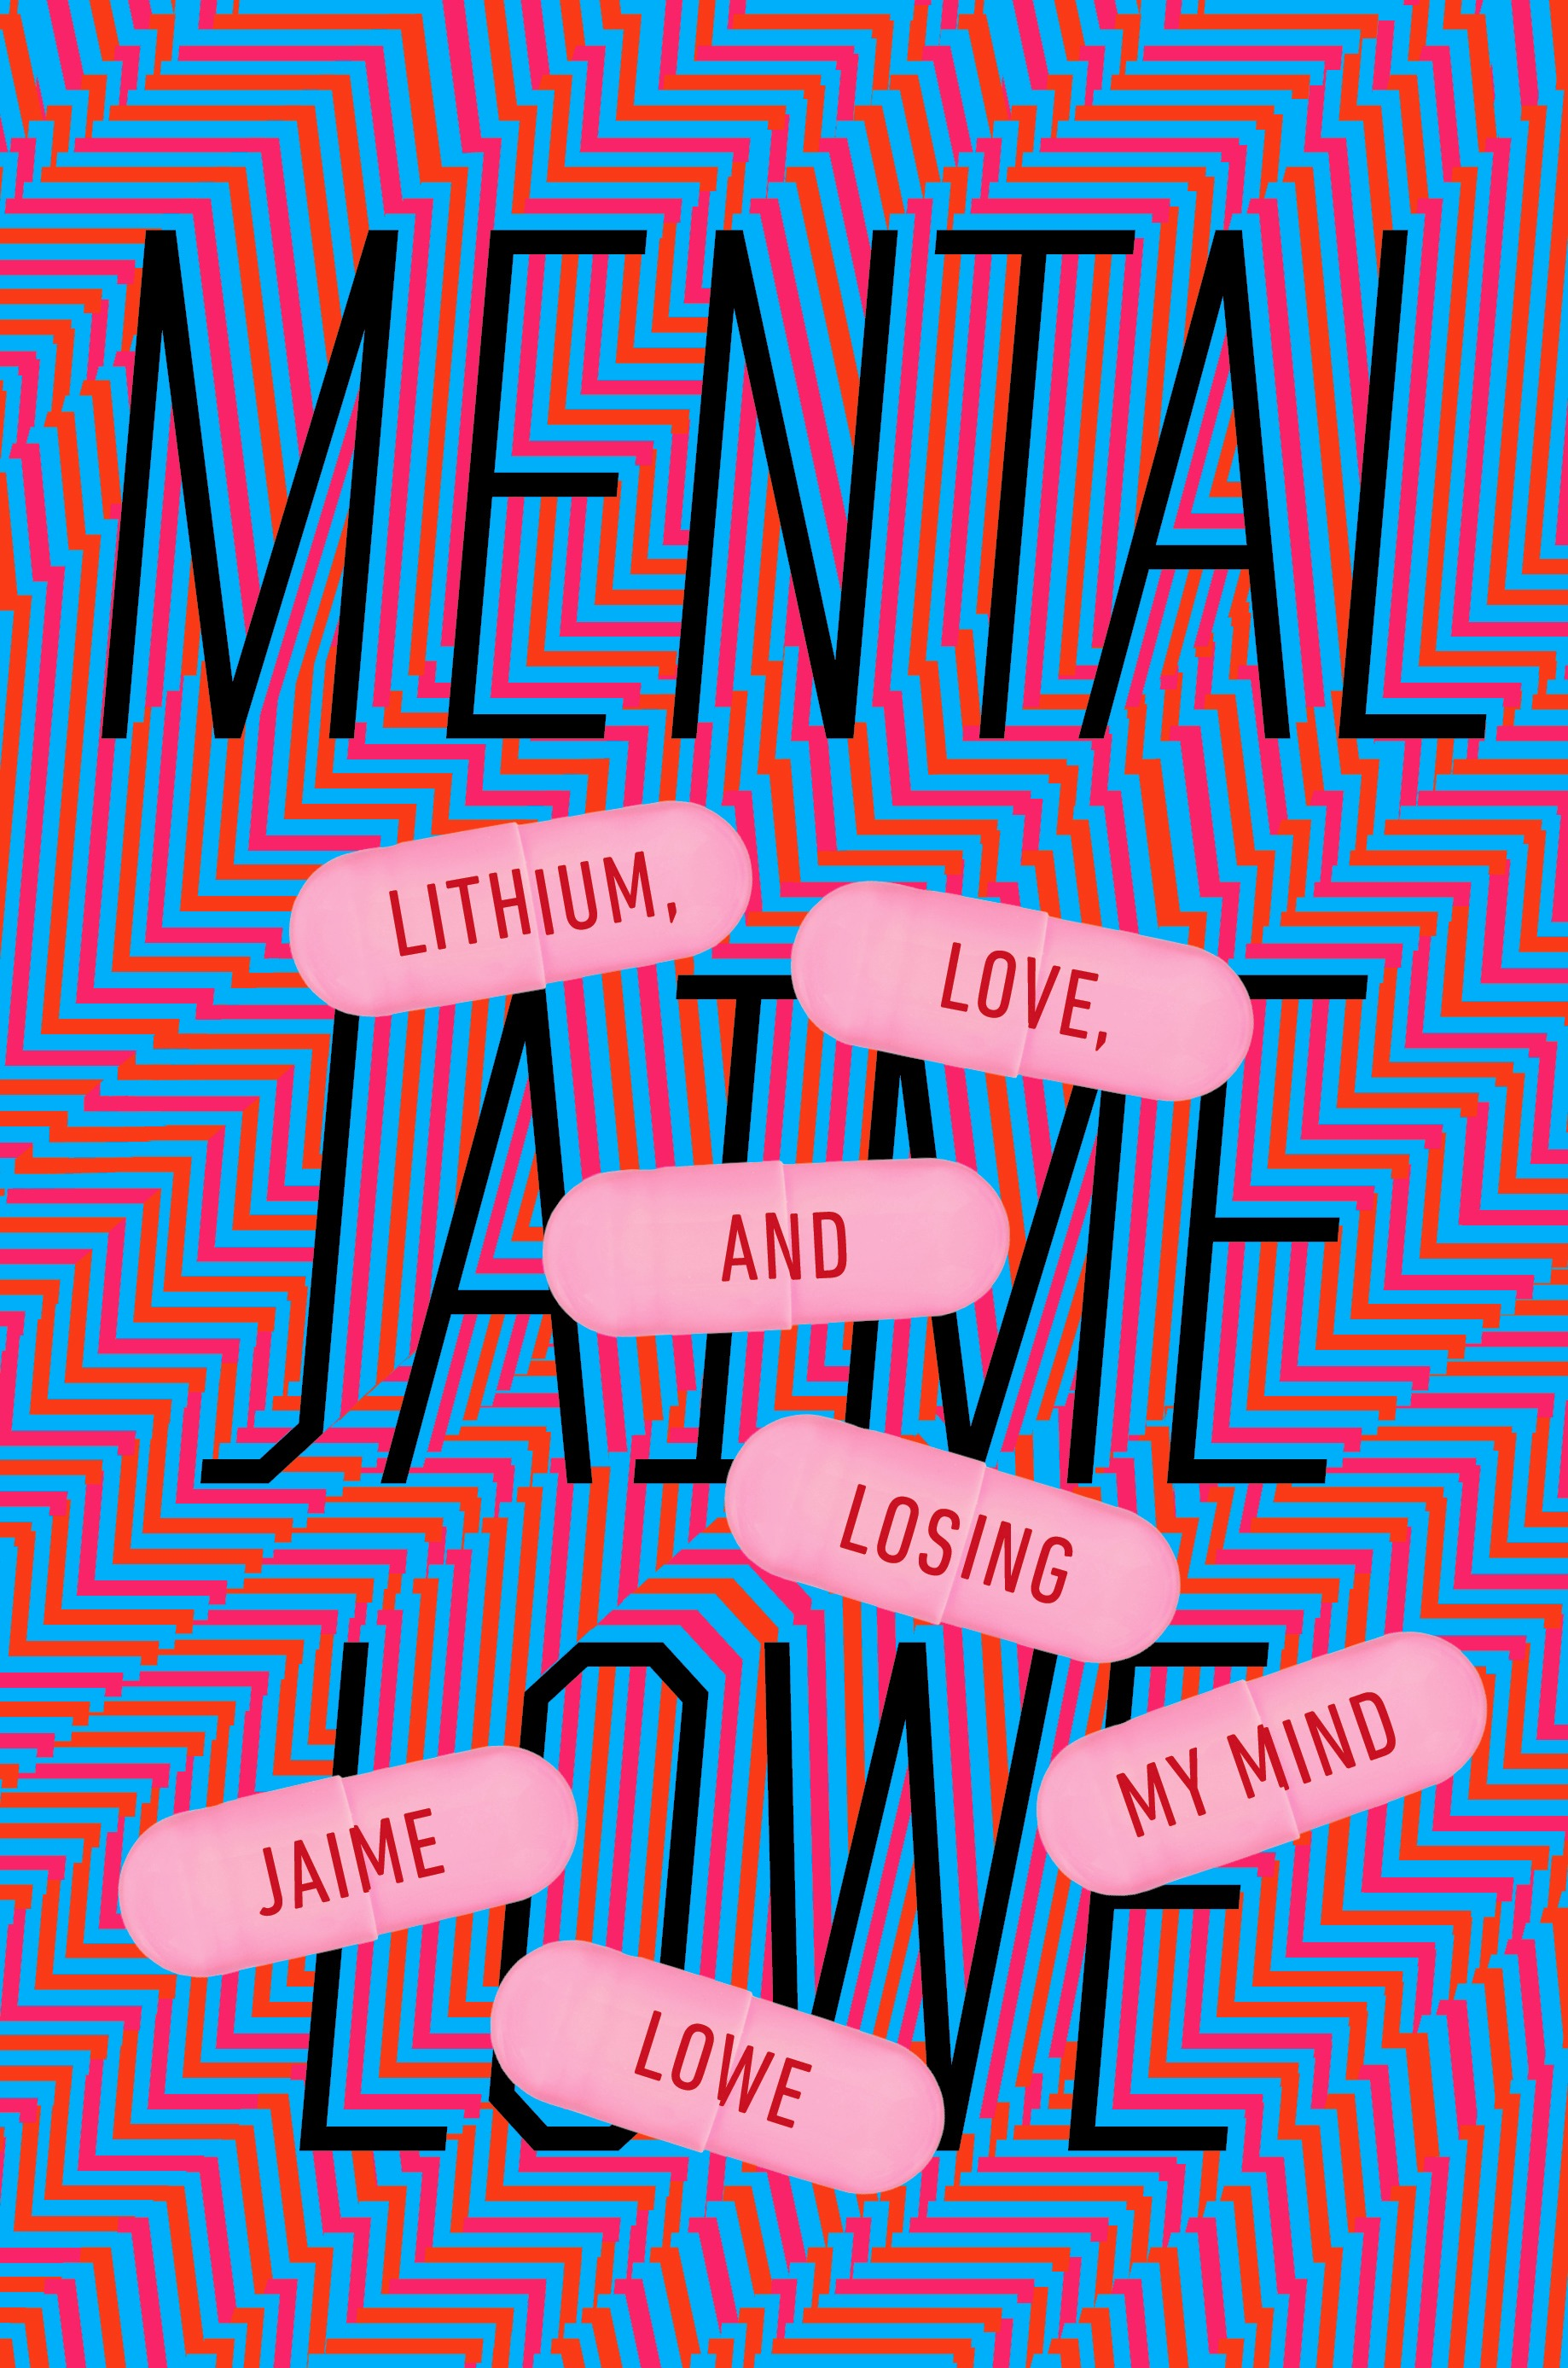 Book Launch: Mental: Lithium, Love, and Losing My Mind by Jaime Lowe